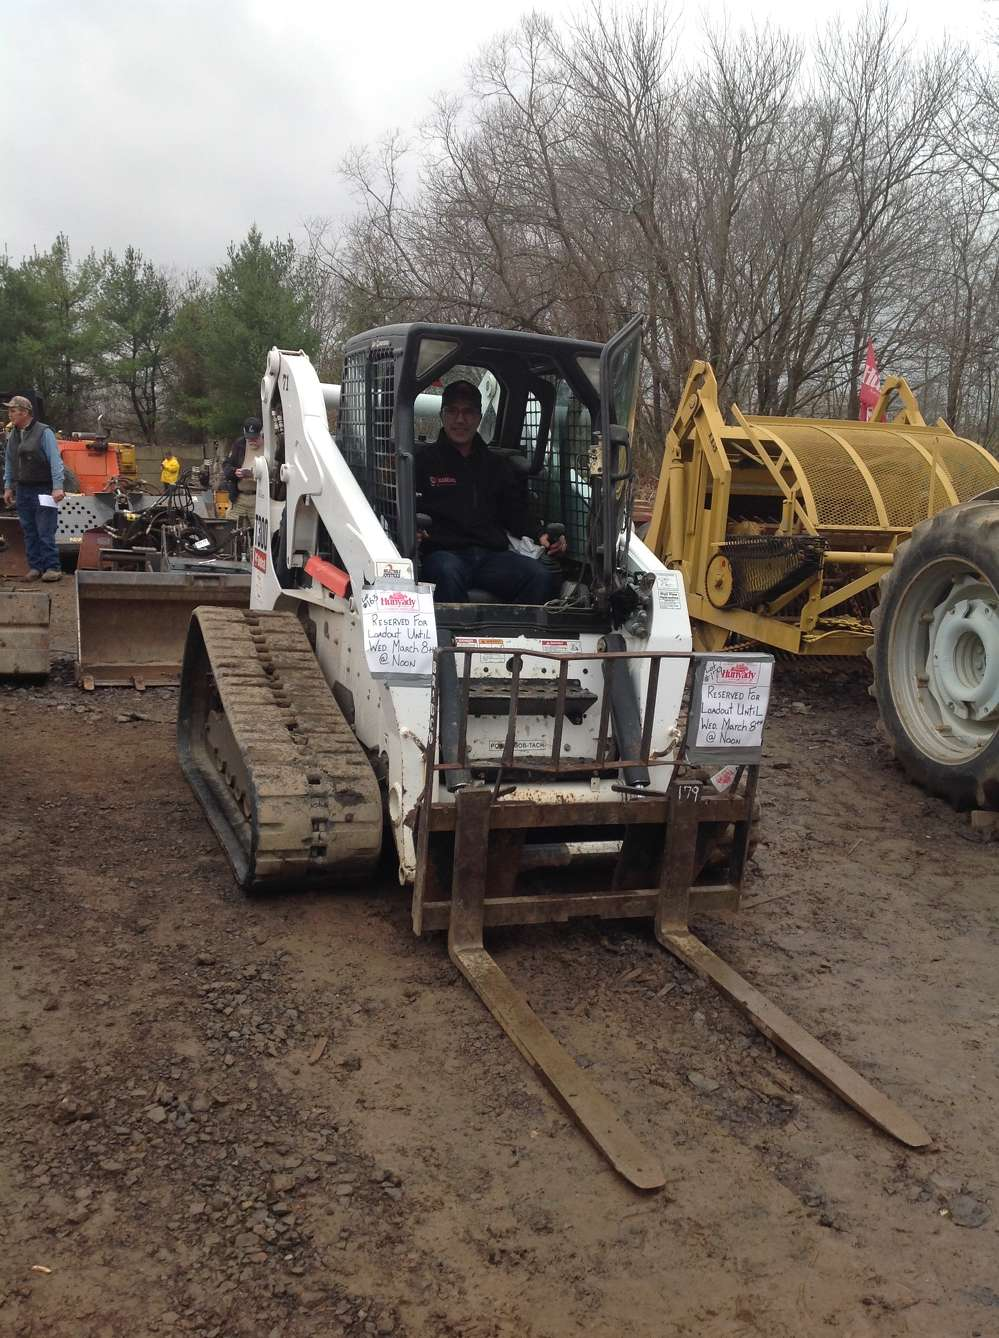 John Pereira, Lucas Construction Group Inc., Morganville, N.J., said he plans to bid on this Bobcat T300 multi-terrain loader.